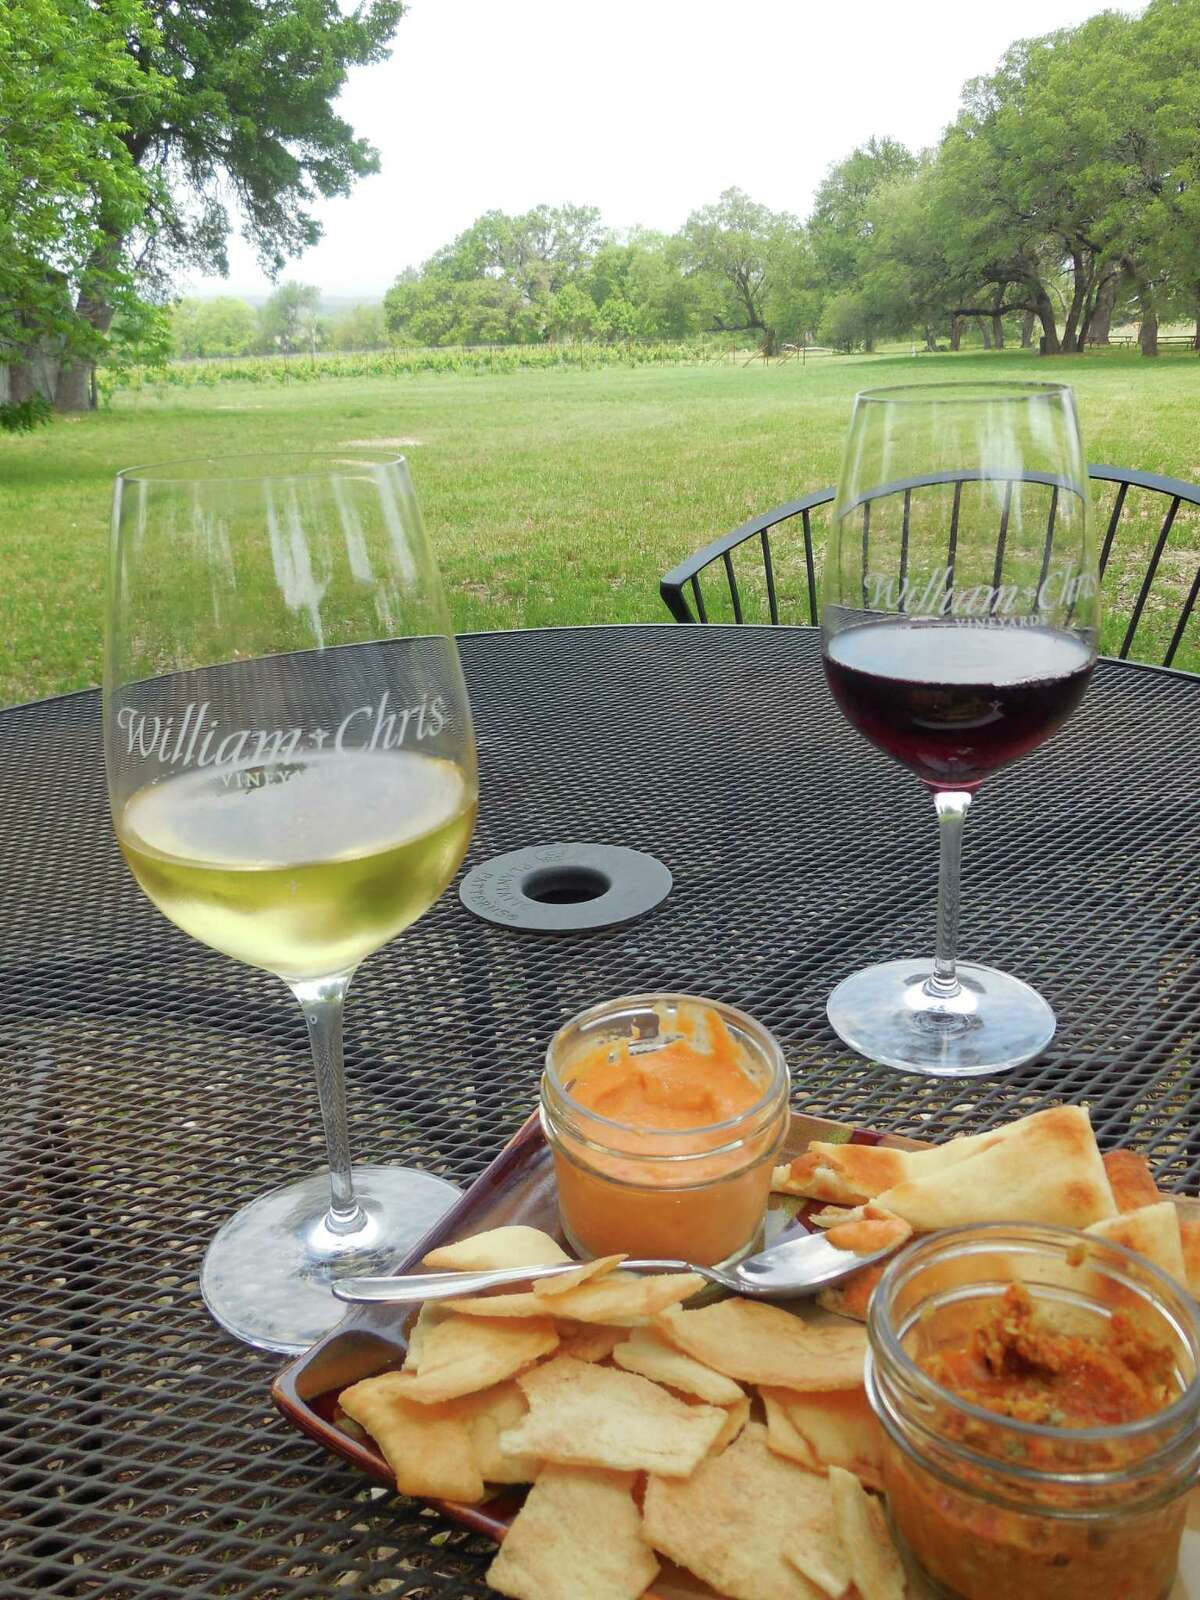 Wineries in the Fredericksburg area, including the William Chris Vineyard in Hye, make it an attractive destination for wine lovers and other visitors.